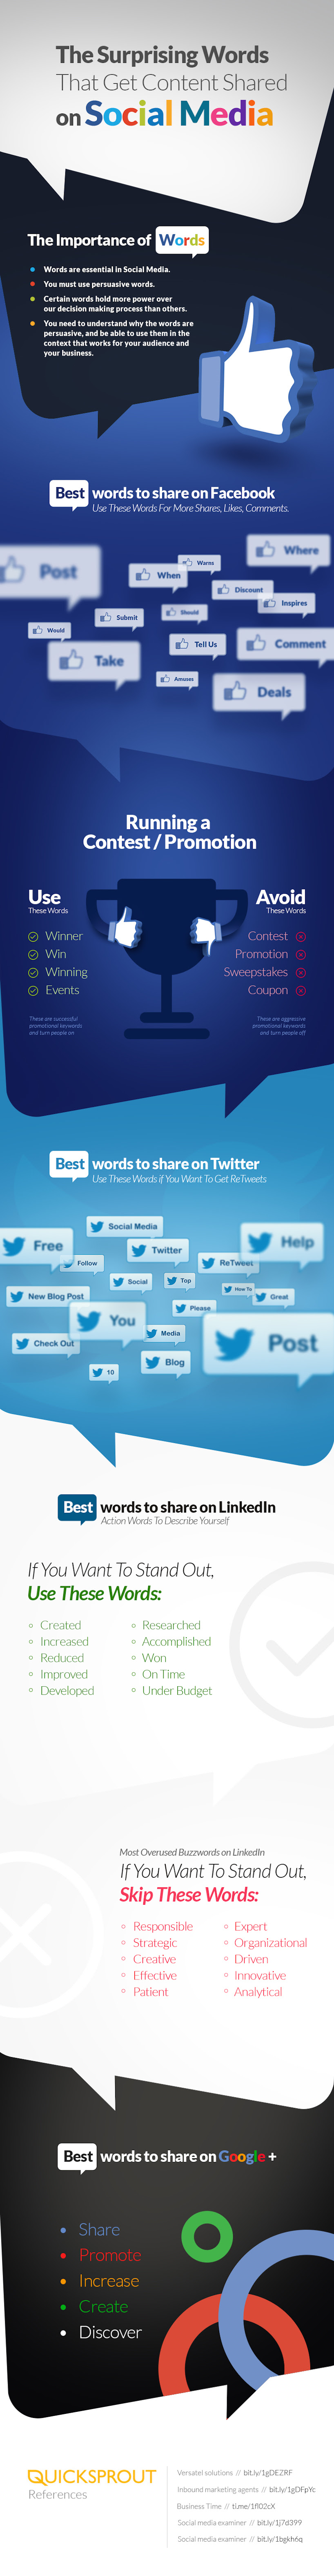 The Surprising Words That Get Content Shared on #SocialMedia - #infographic